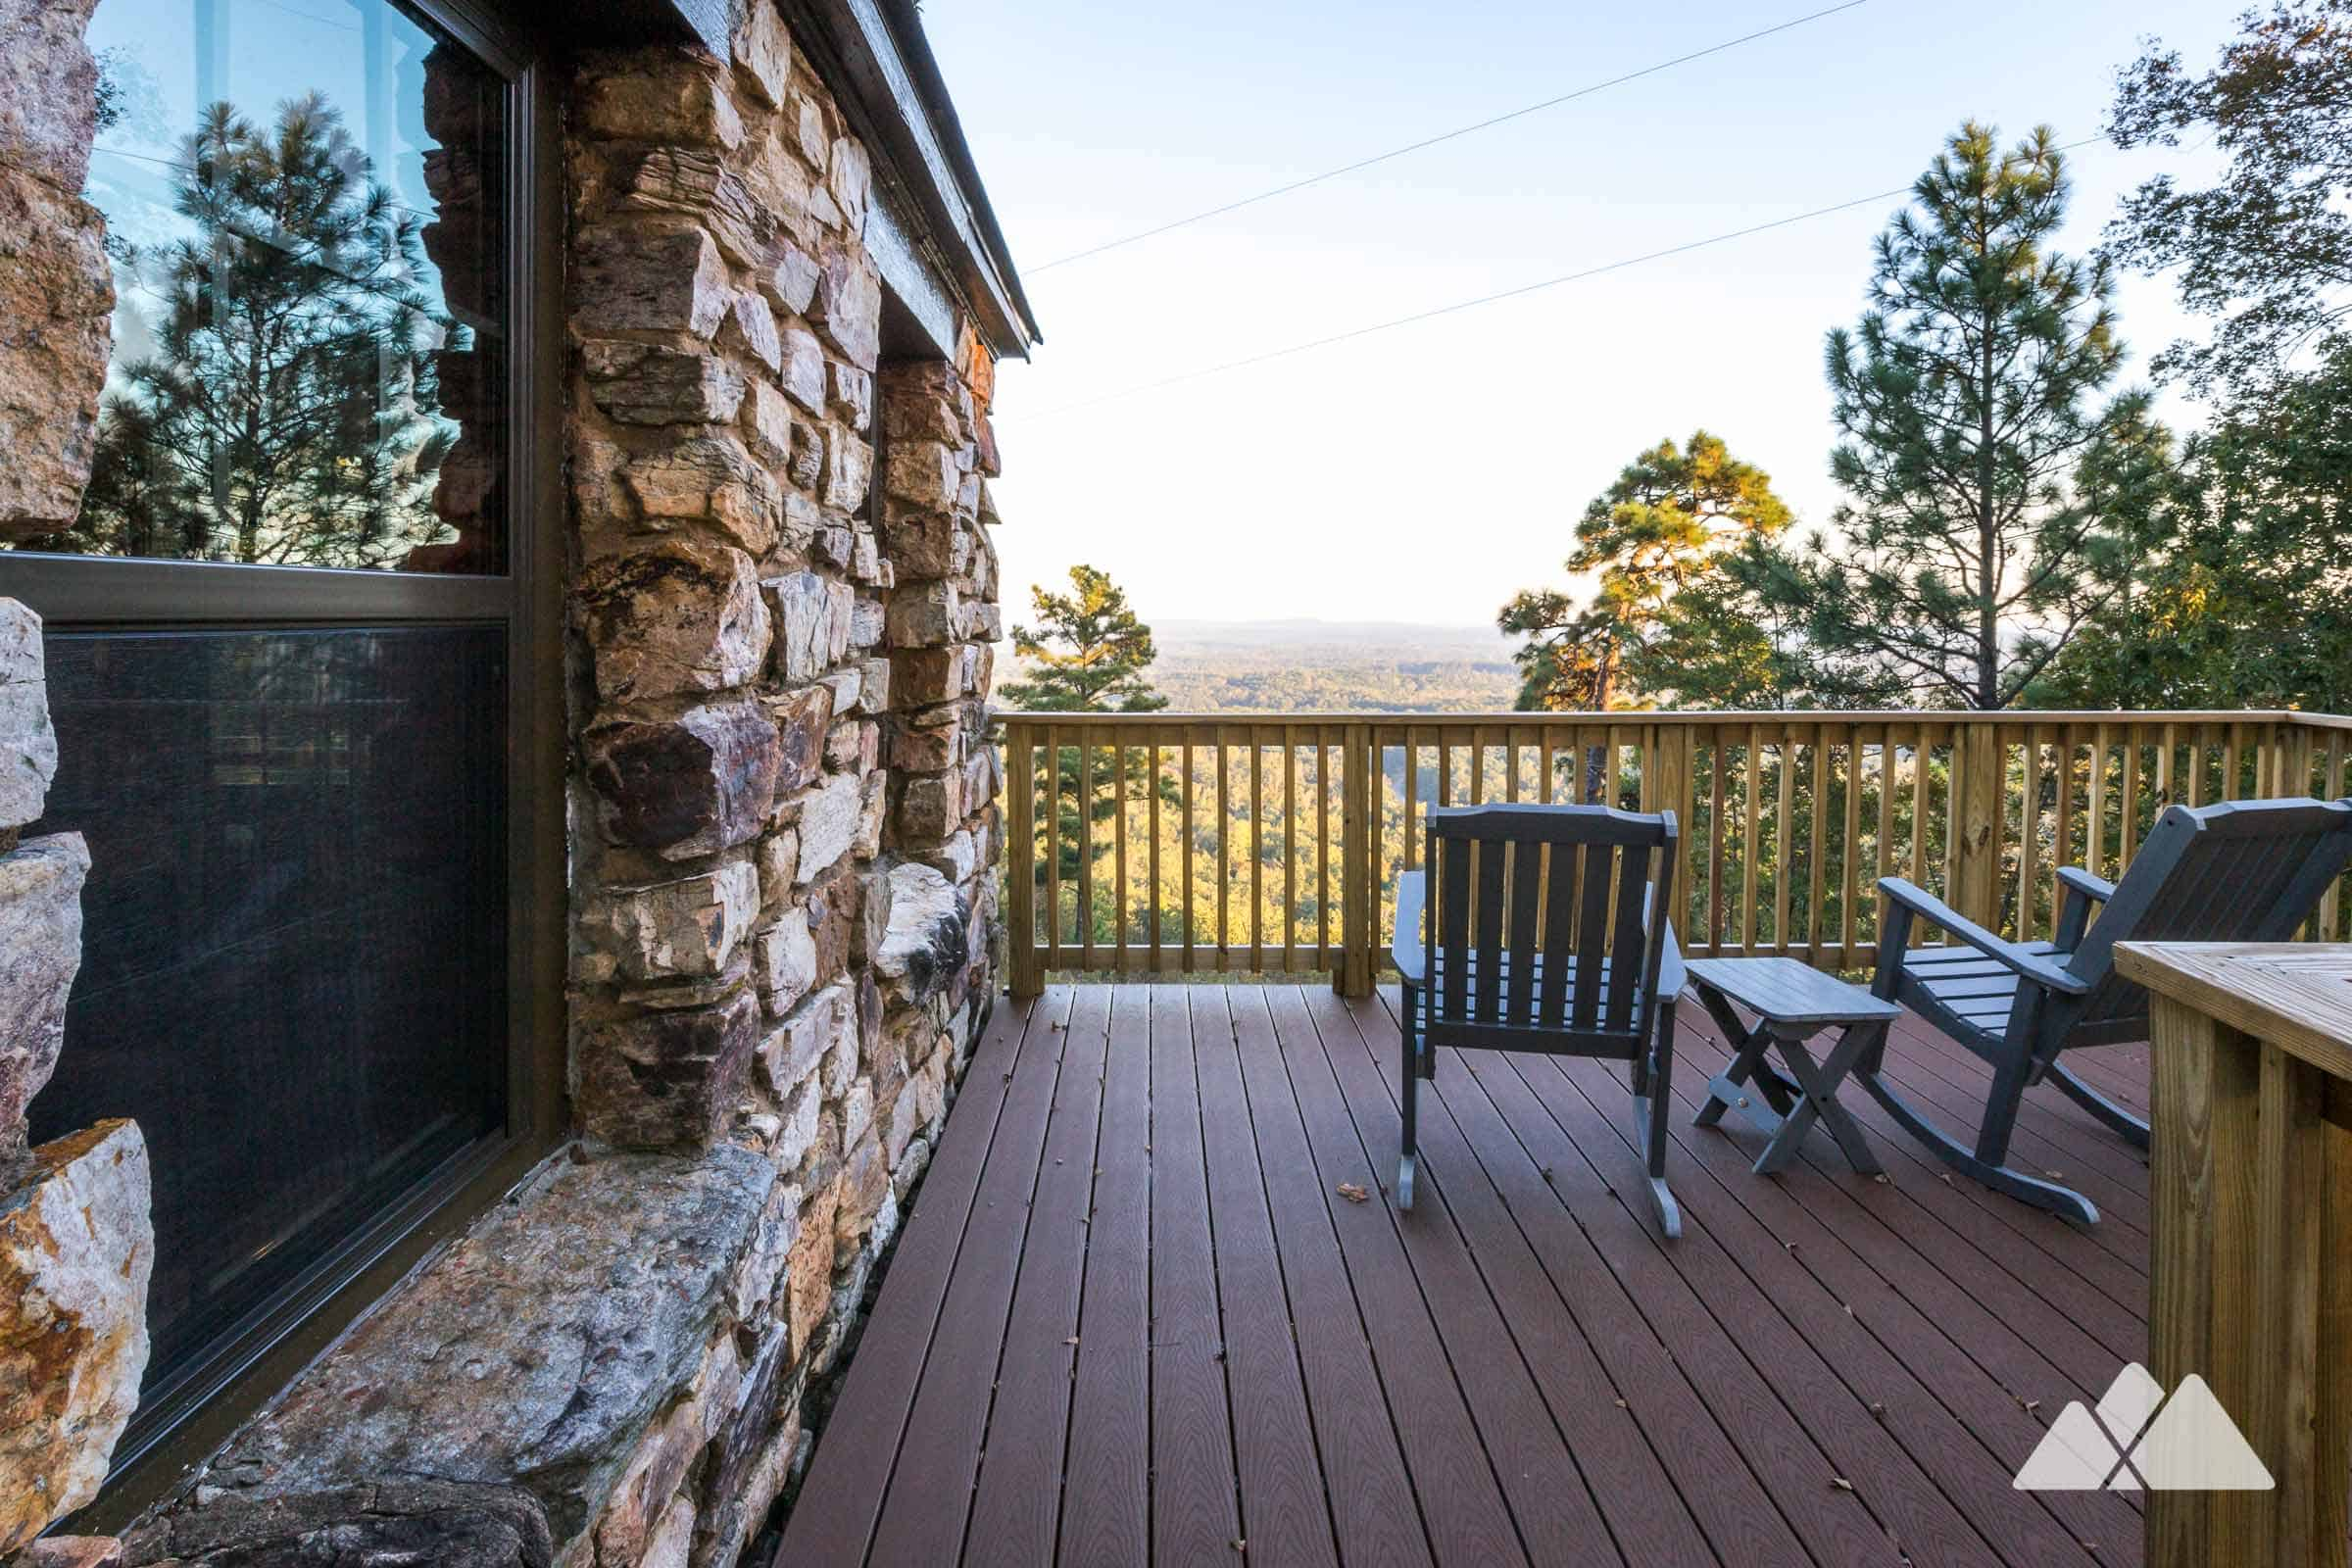 stone in vacation the mountain for relax homeaway ready ruidoso ridge fawn you to skii ga cabins close town and rental cabin side enjoy